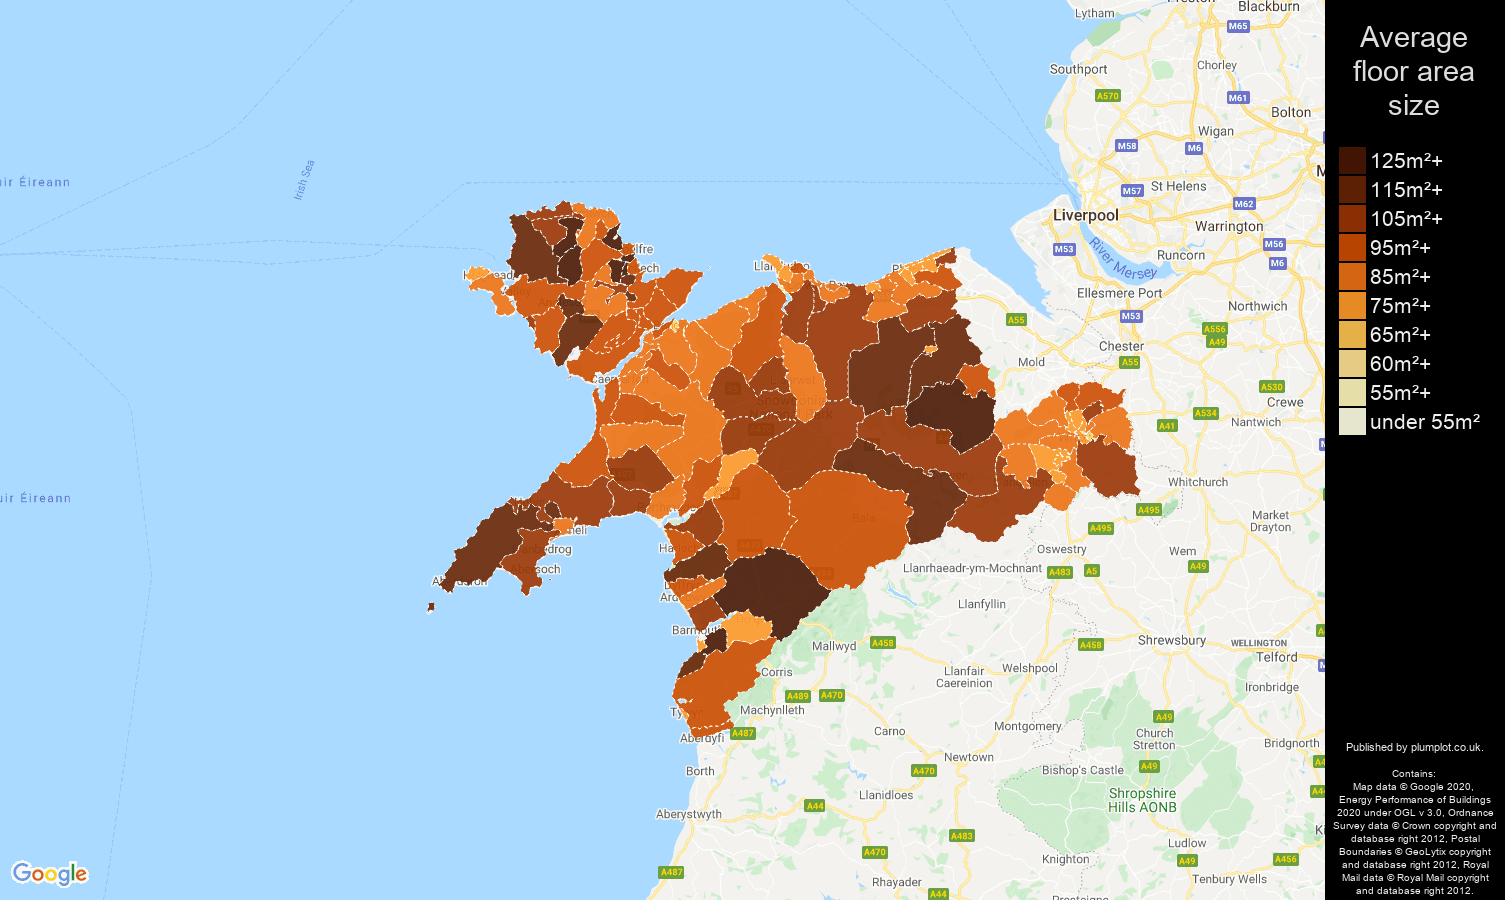 Llandudno map of average floor area size of properties